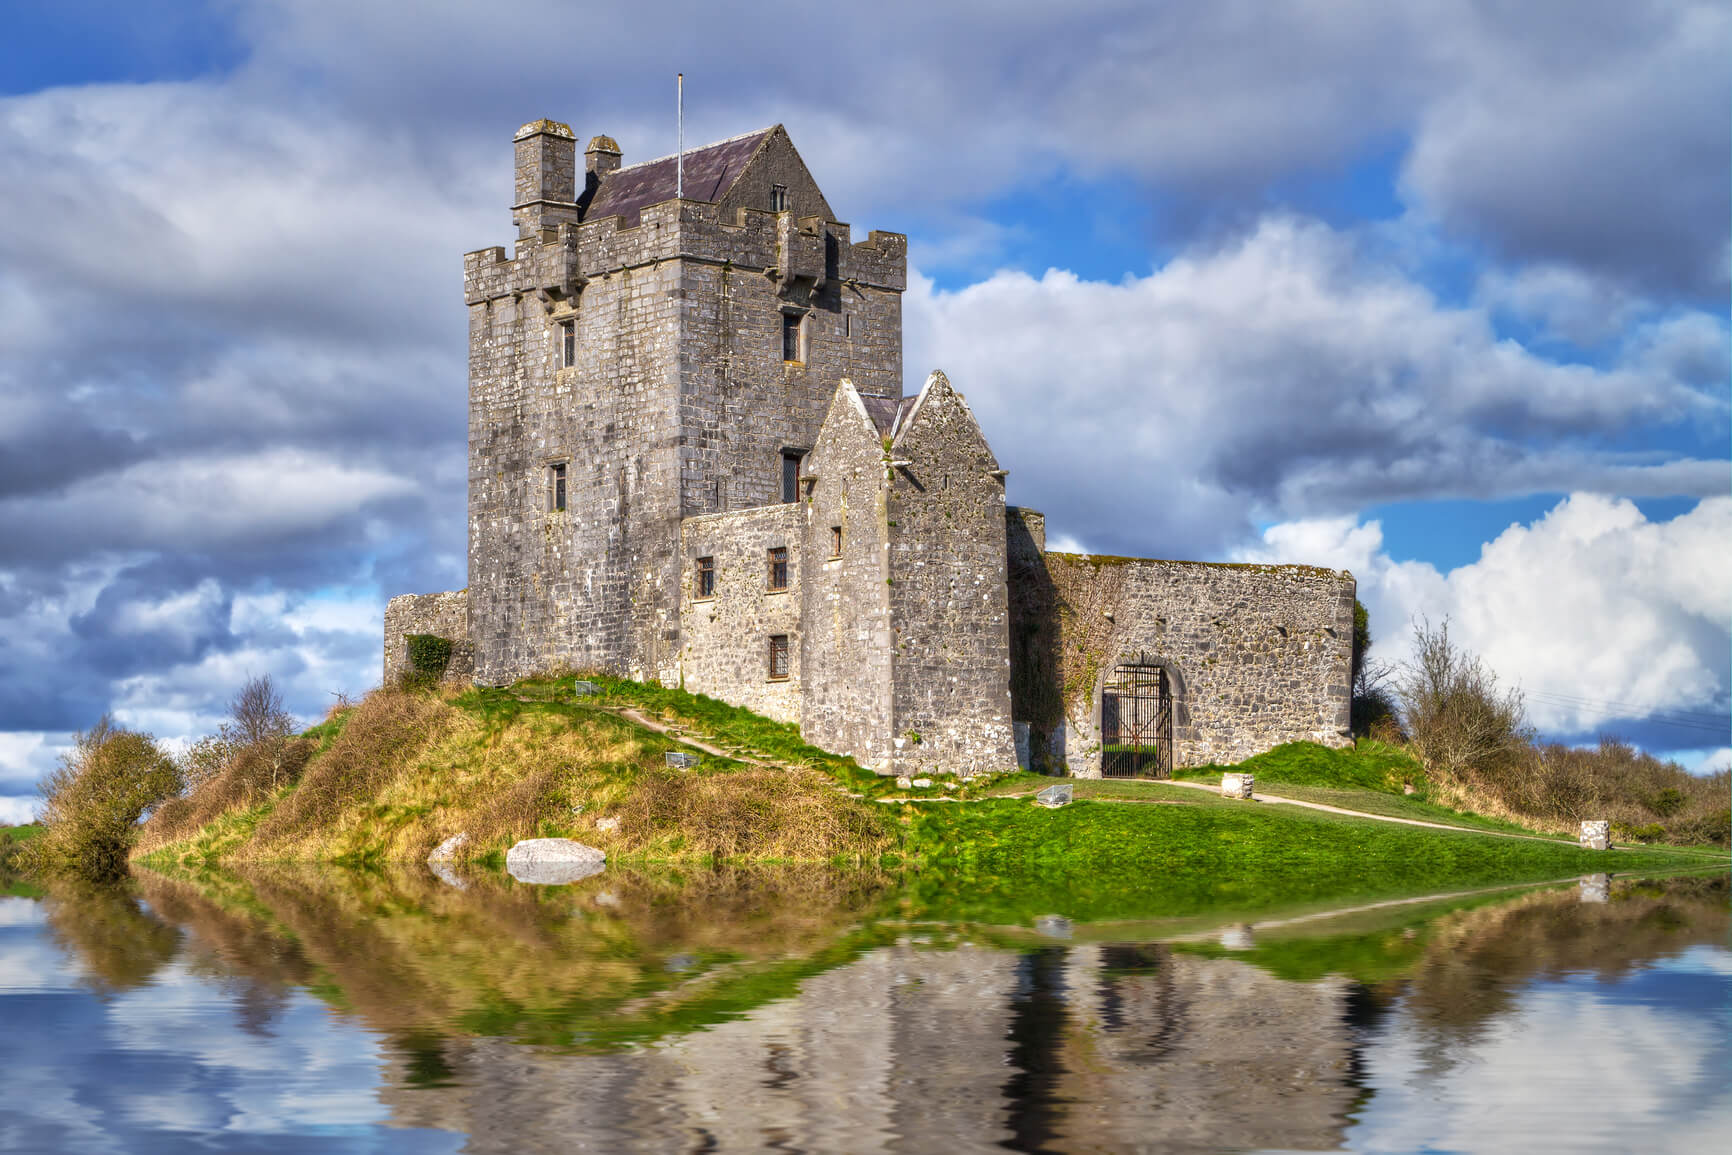 Non-stop from Philadelphia to Dublin, Ireland for only $329 roundtrip